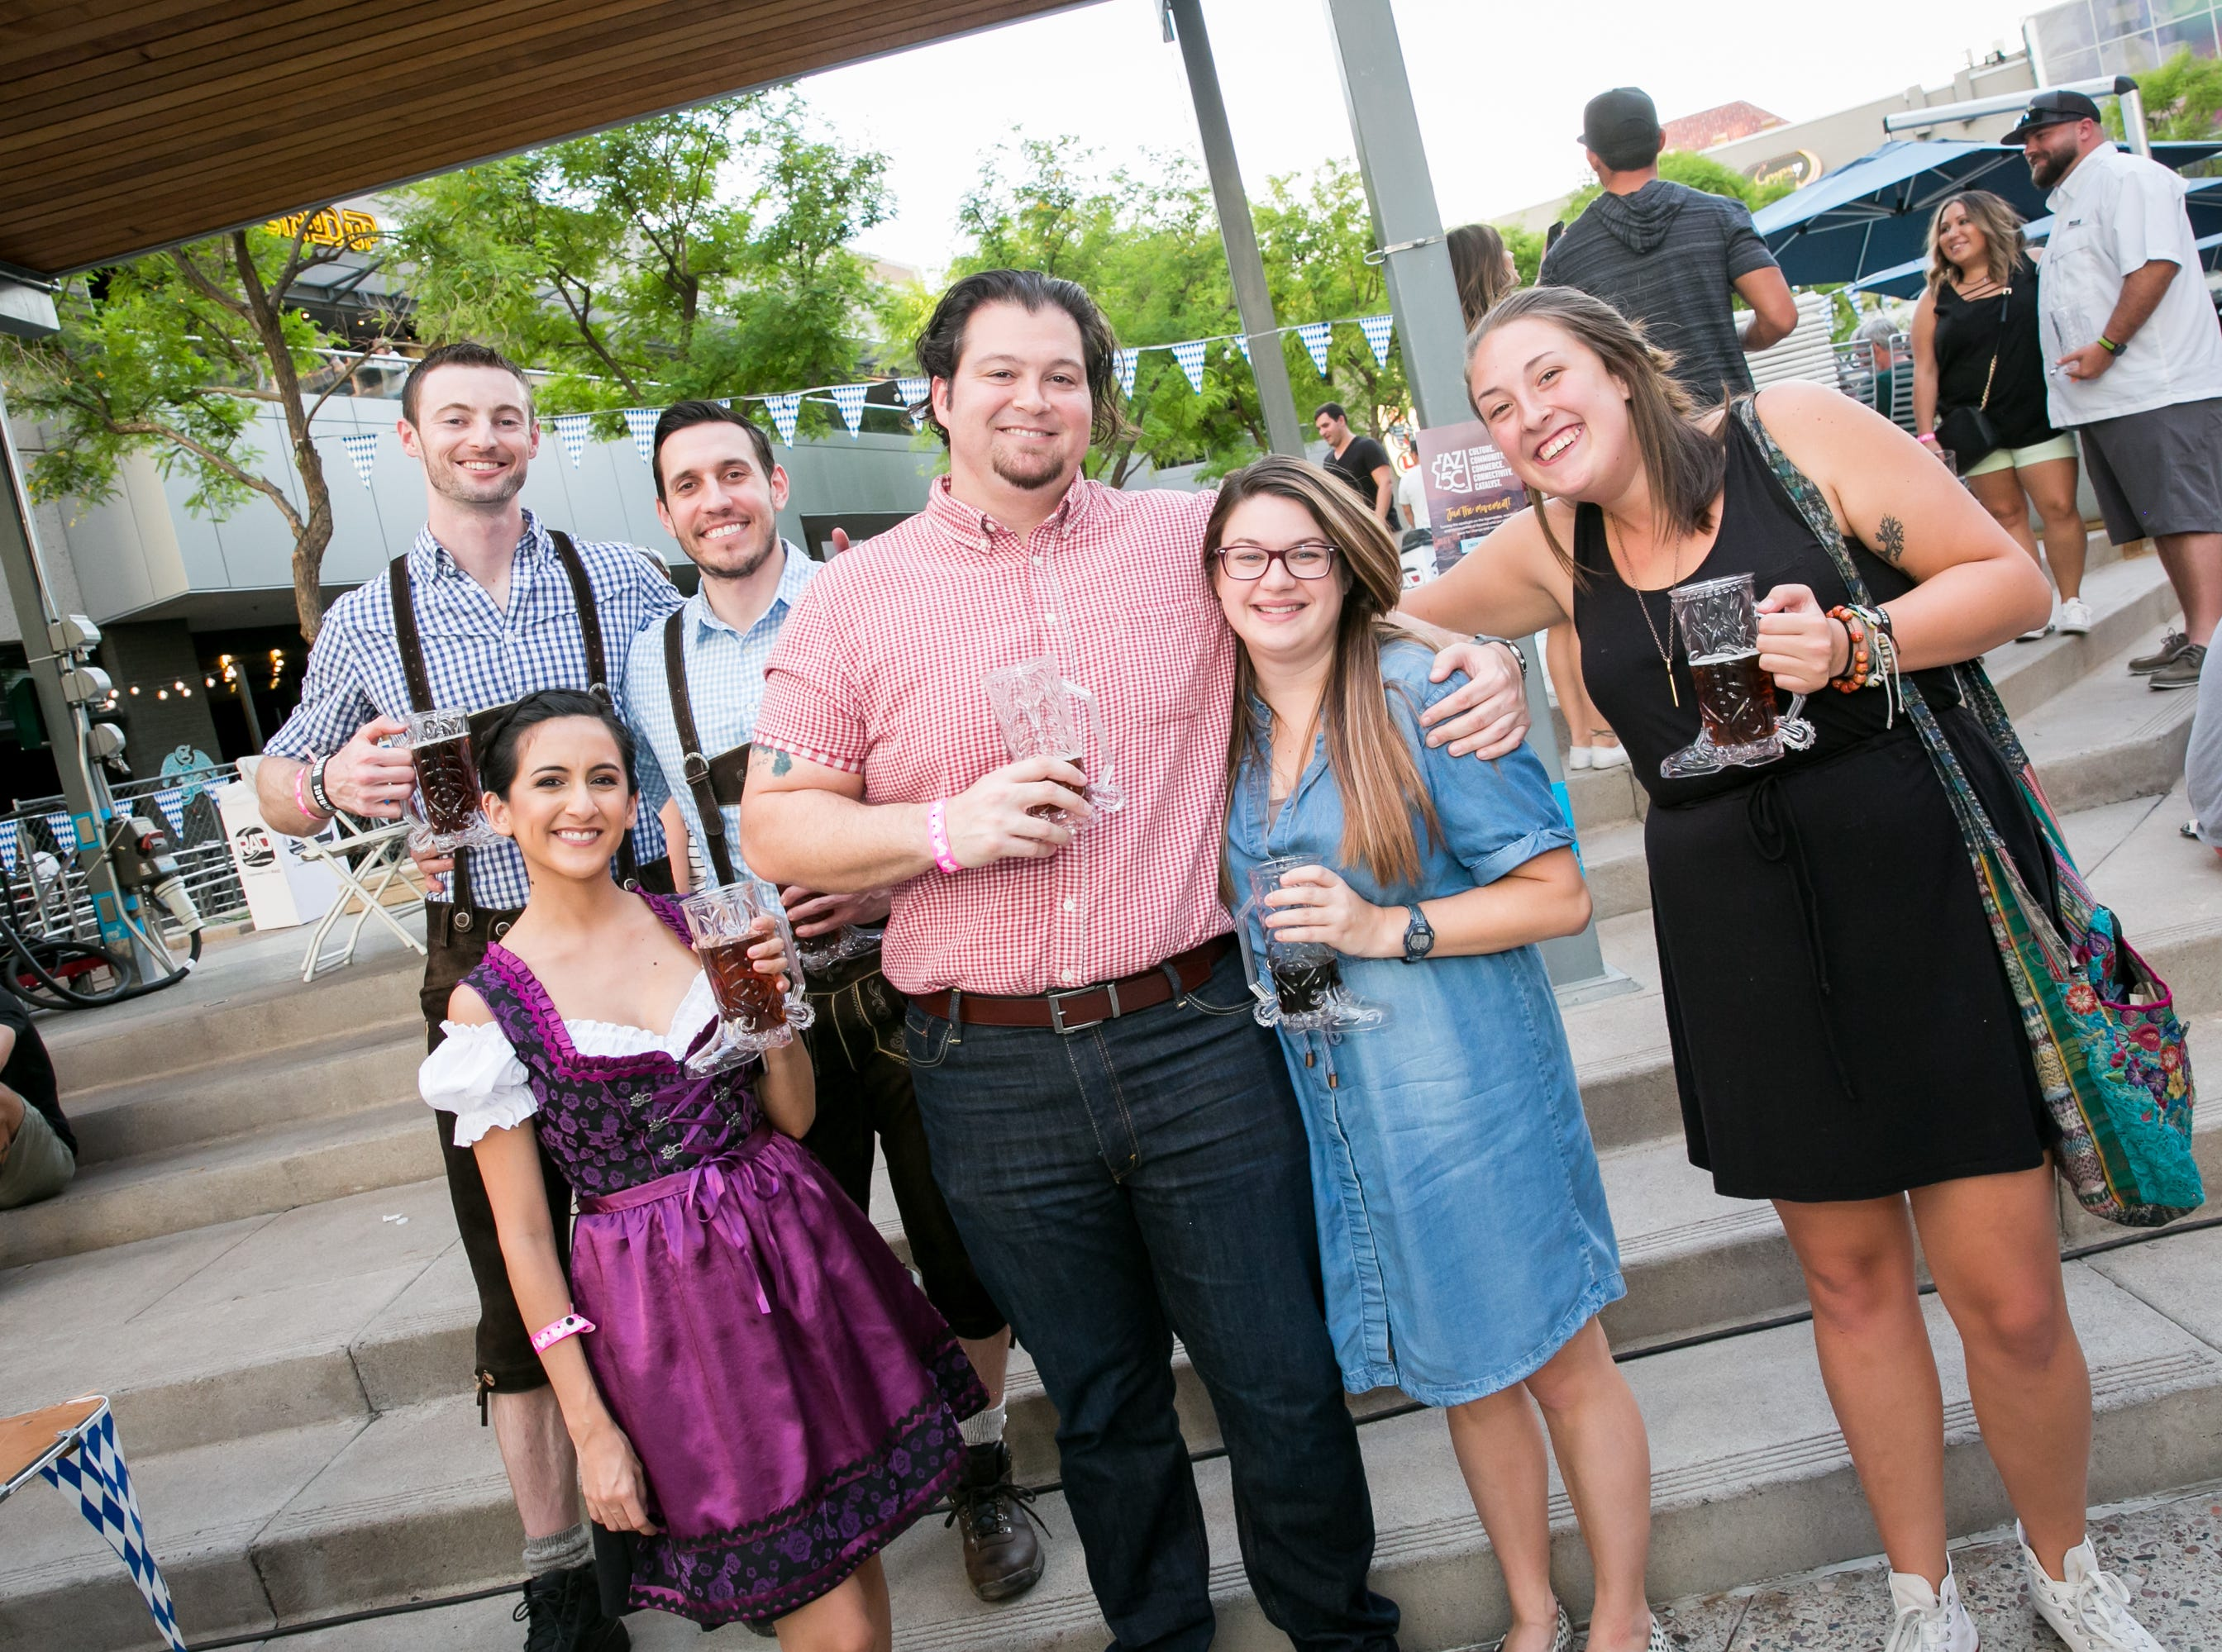 These pals had a lovely time during Downtown Phoenix Oktoberfest at CityScape on Saturday, October 6, 2018.